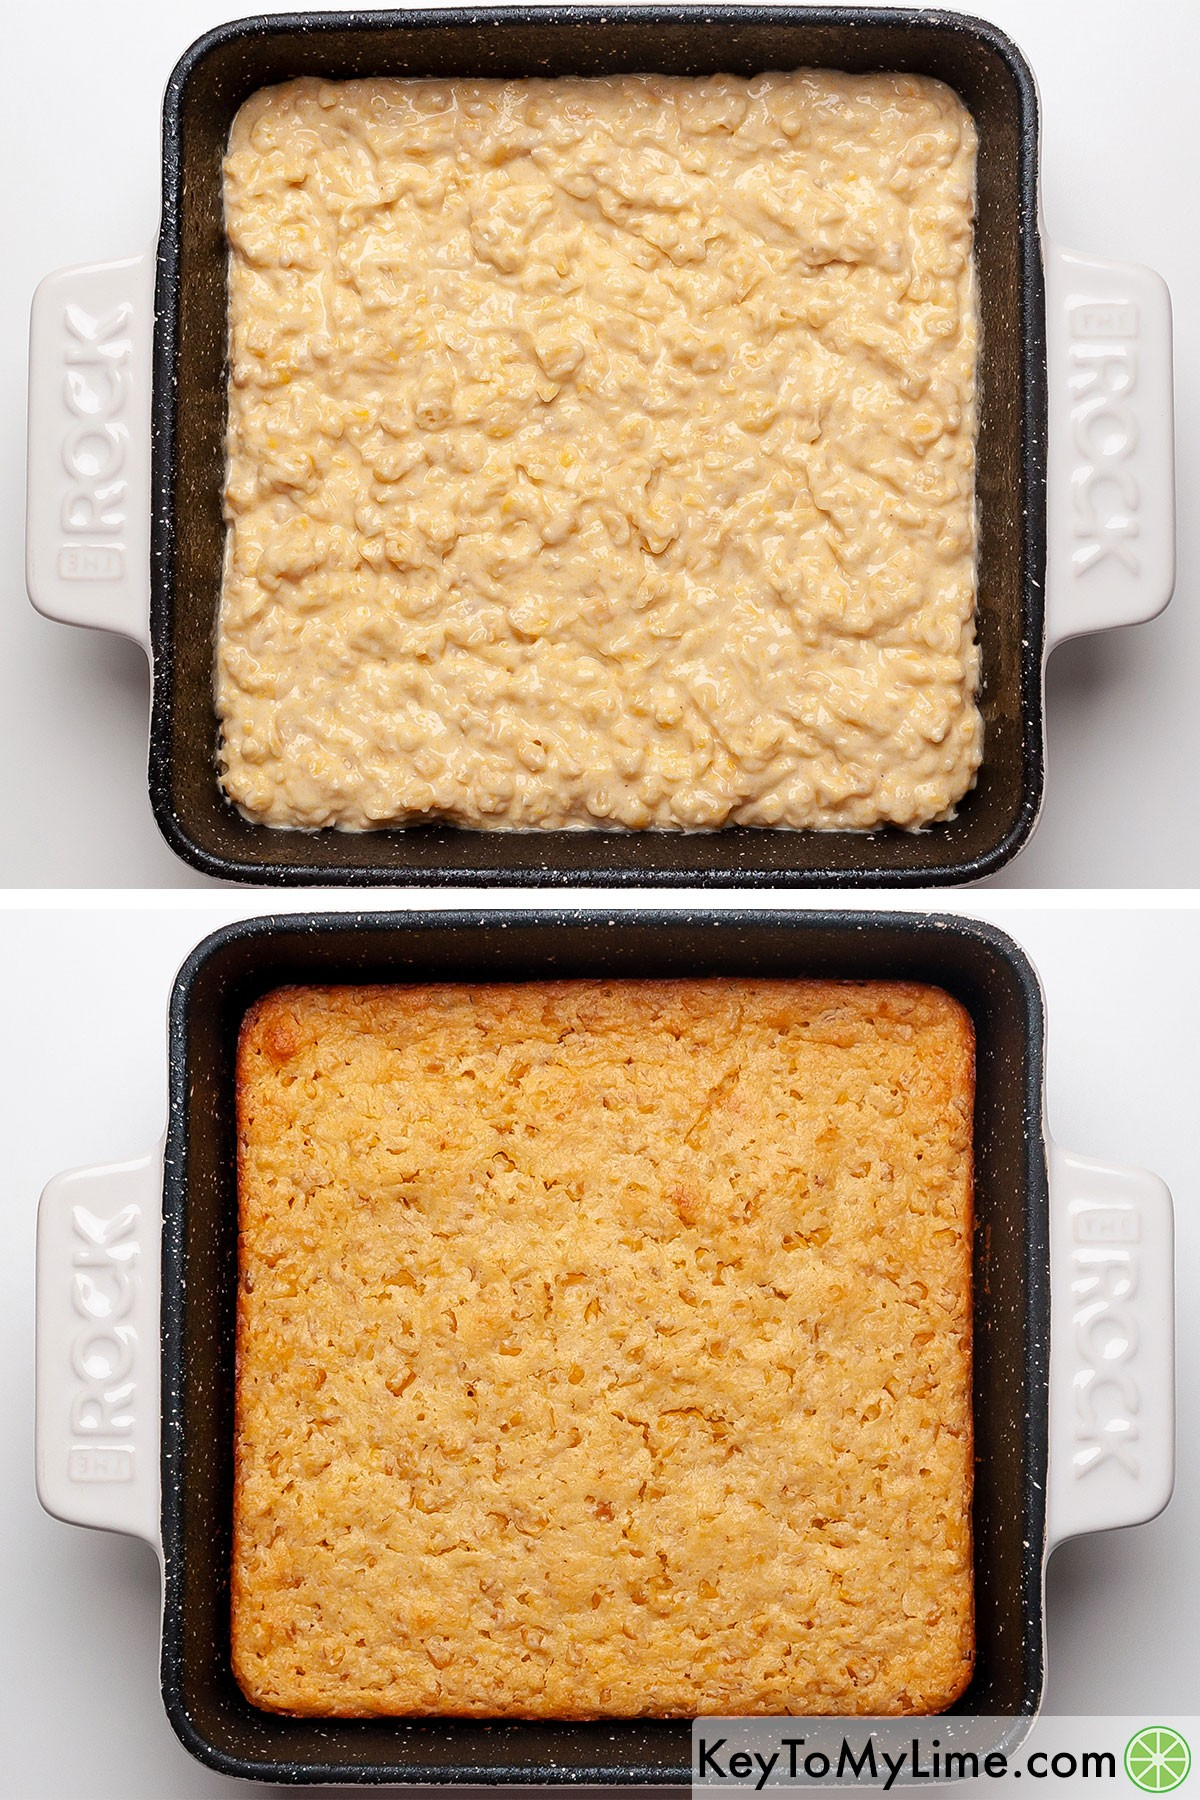 Jiffy corn casserole before and after baking.